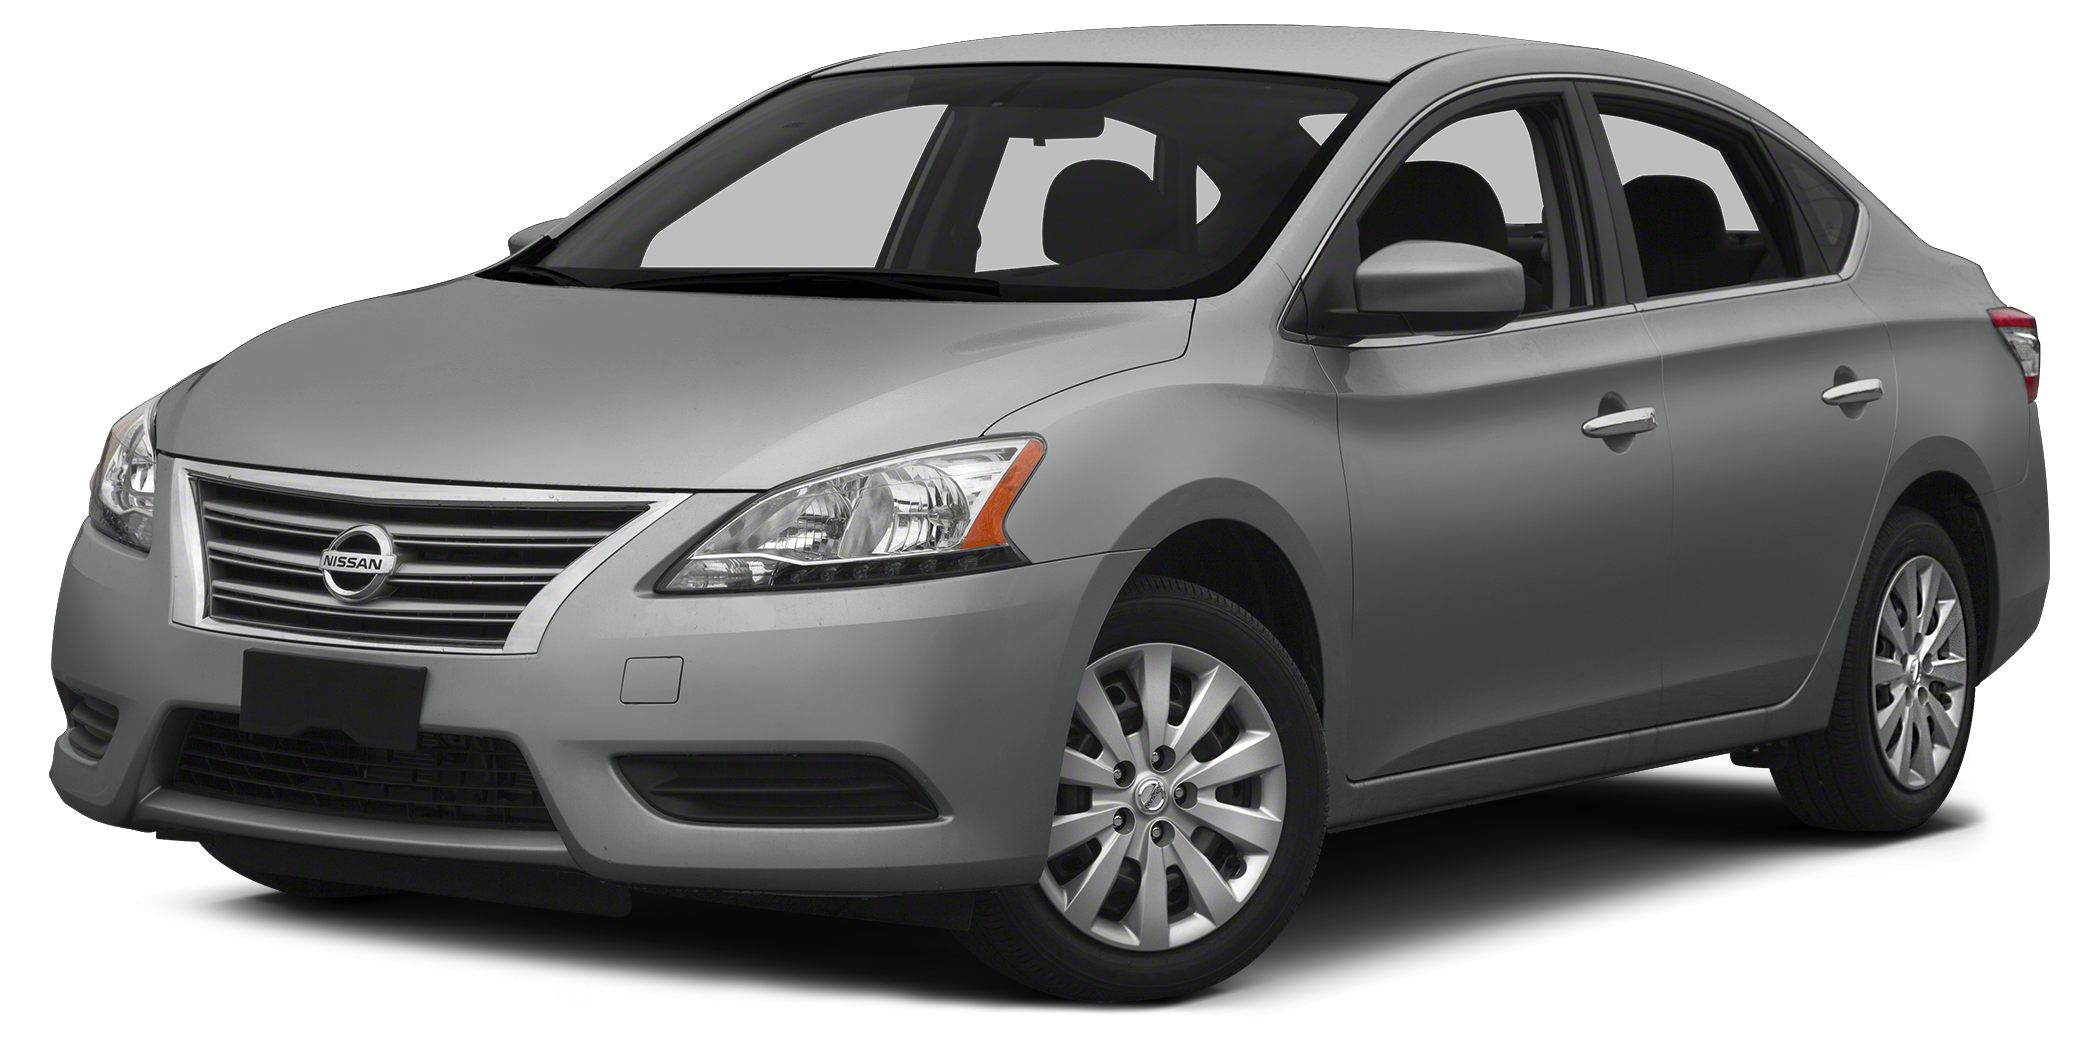 2014 Nissan Sentra SV  Miles 43859Color Magnetic Gray Stock PN17262 VIN 3N1AB7AP3EY340570